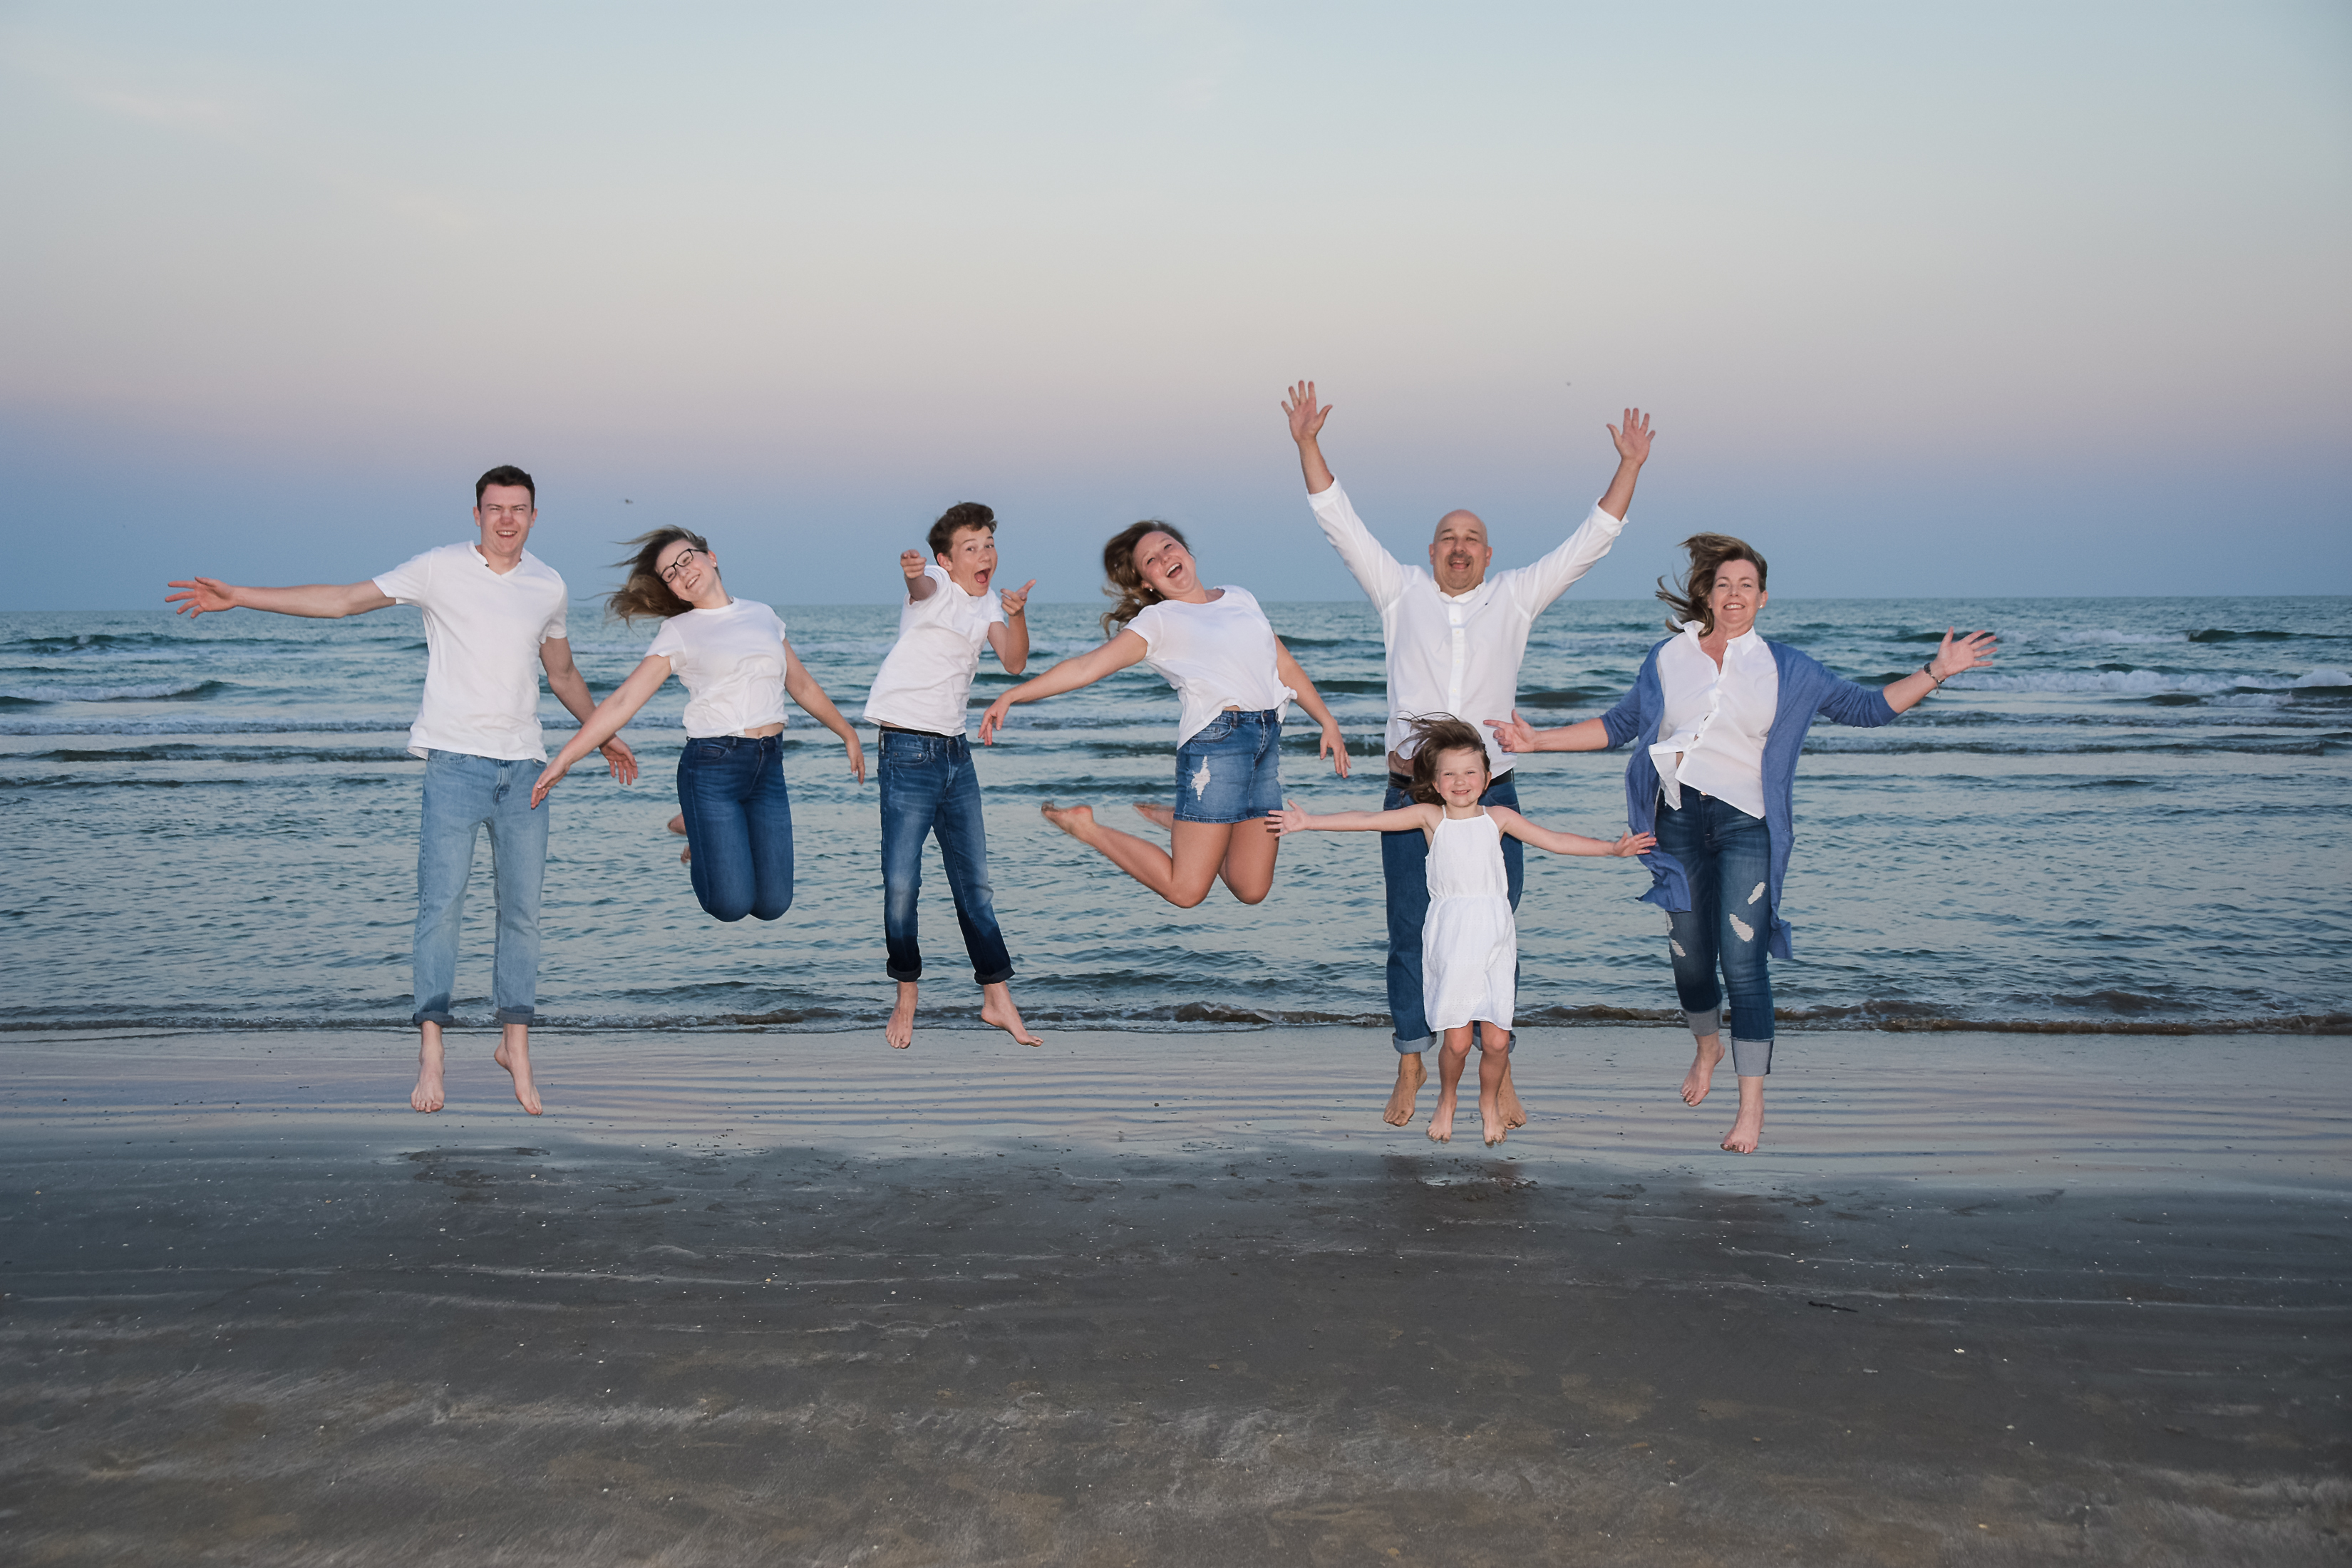 BEACH.Pictures-6272